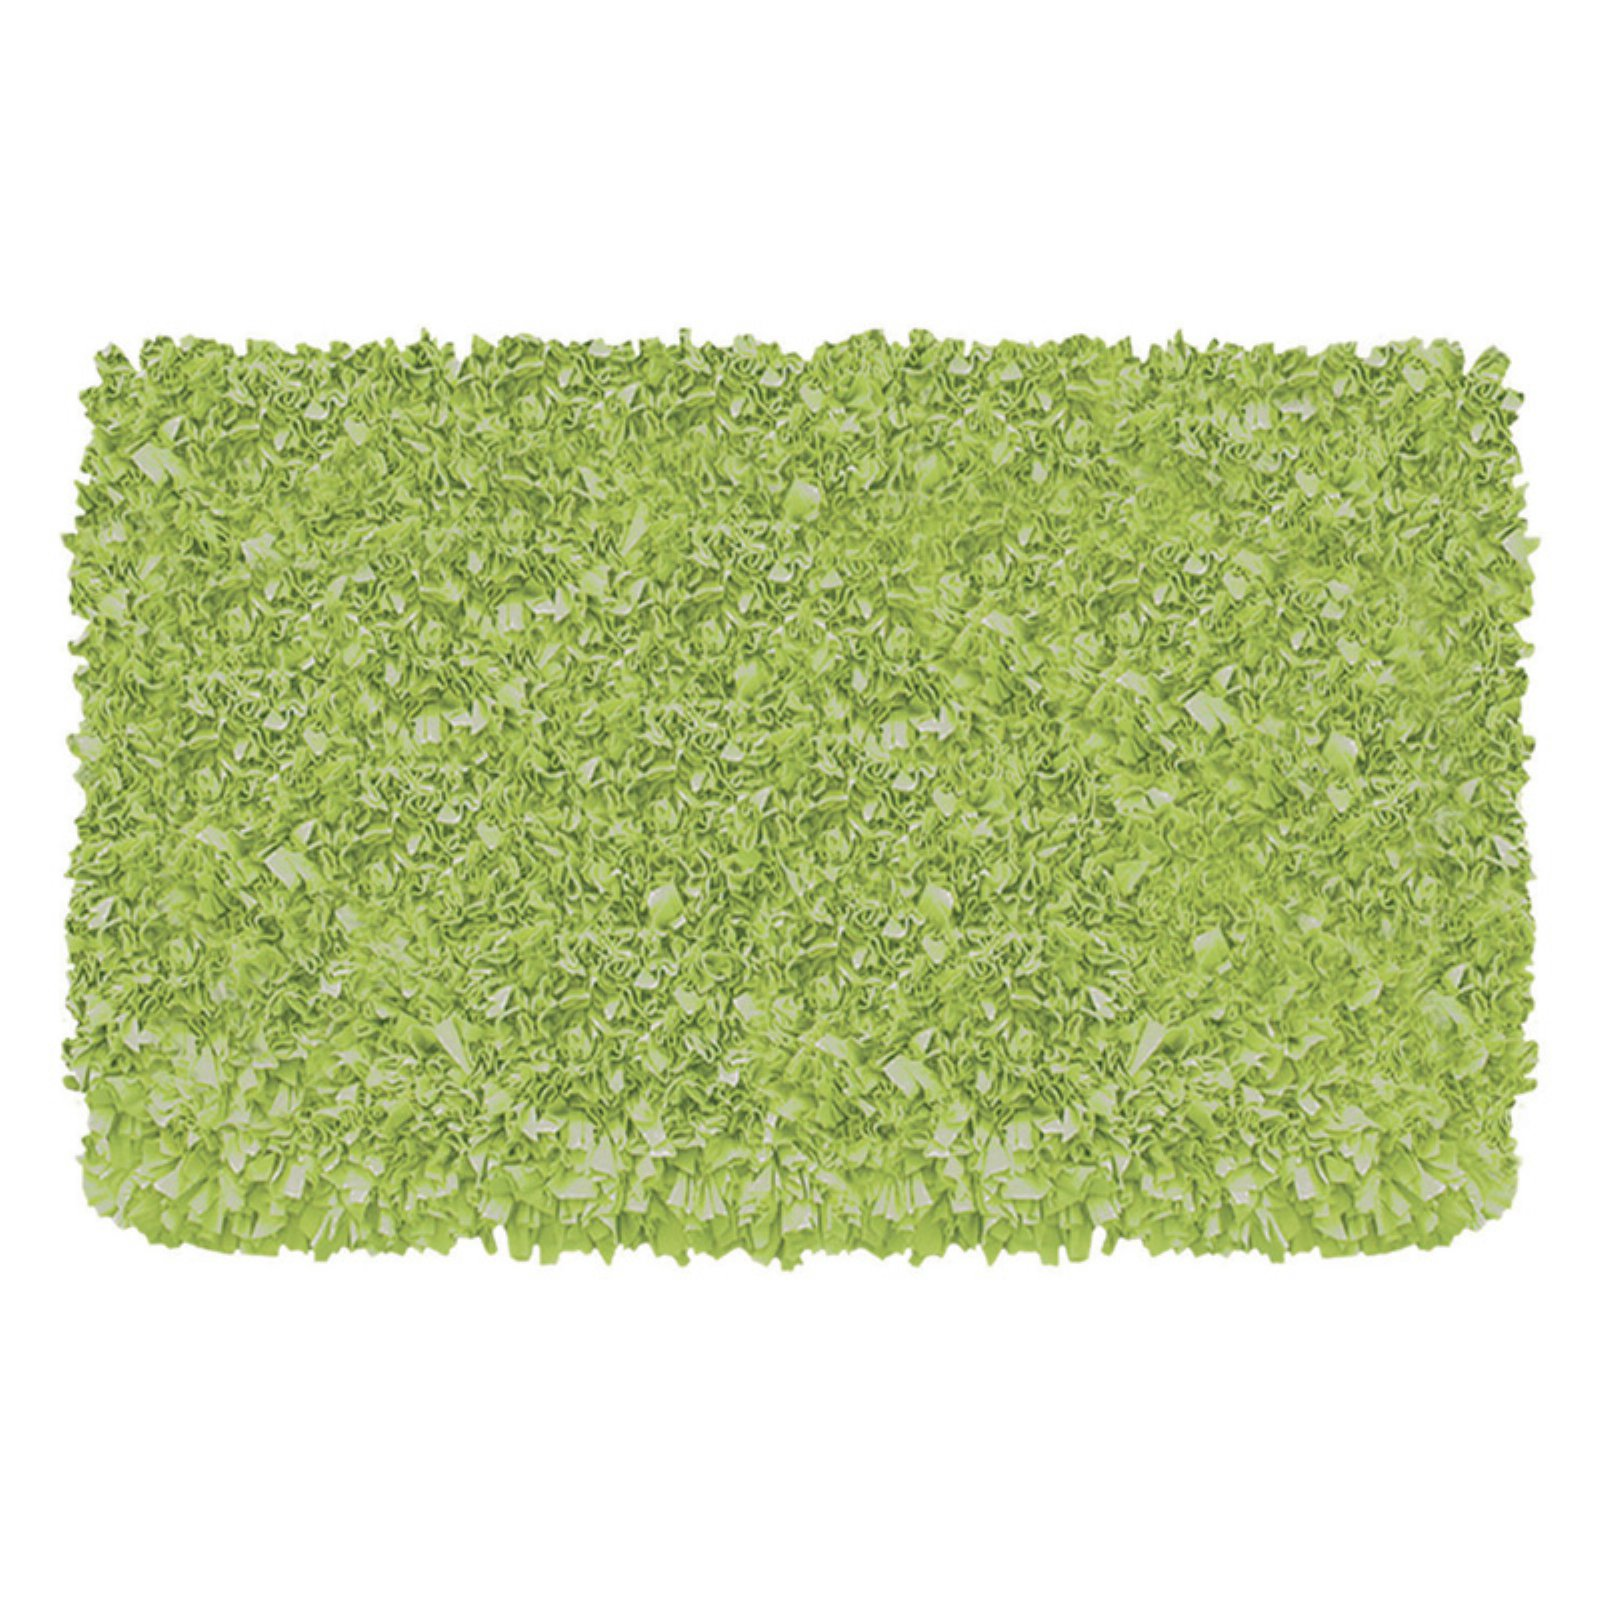 The Rug Market Shaggy Raggy Lime Size 4.7' x 7.7' Area Rug